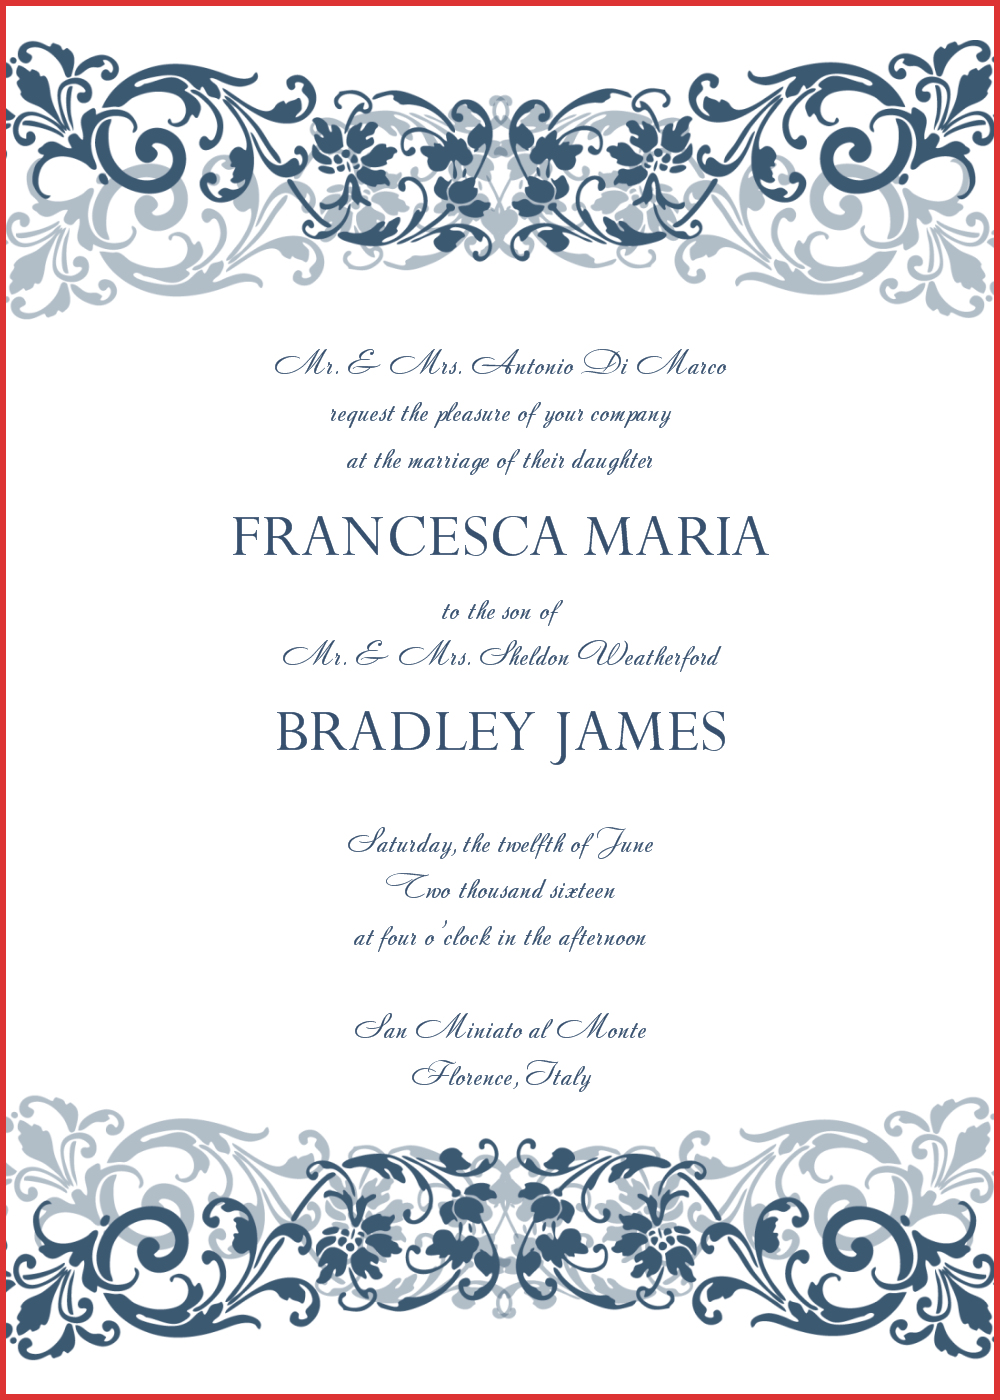 97 Free Wedding Invitation Template In Word for Ms Word for Wedding Invitation Template In Word